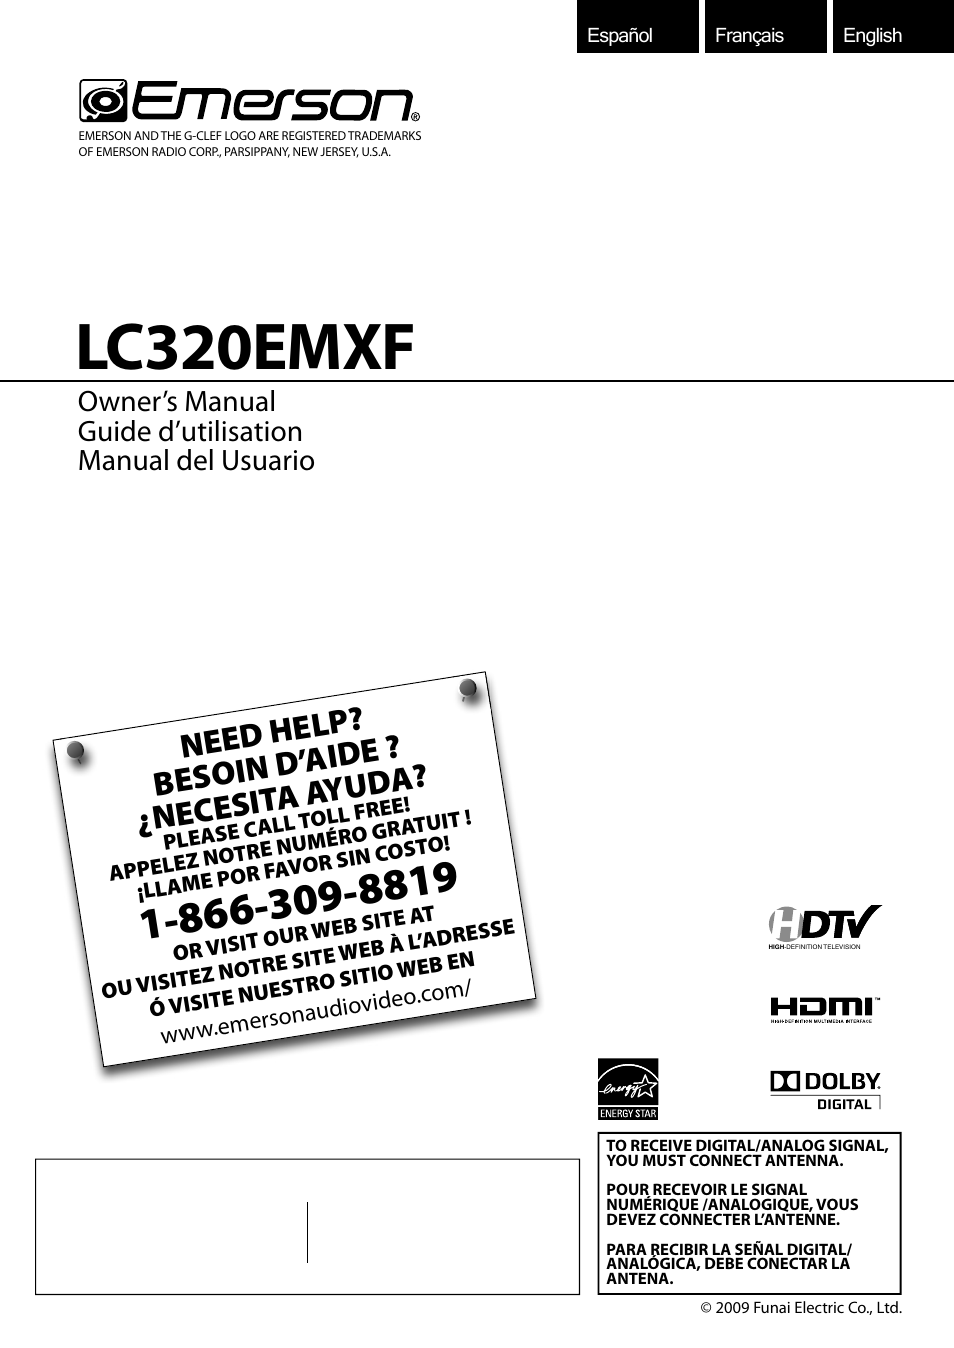 emerson lc320emxf user manual 116 pages rh manualsdir com emerson lc320emxf tv manual emerson lc320emxf service manual